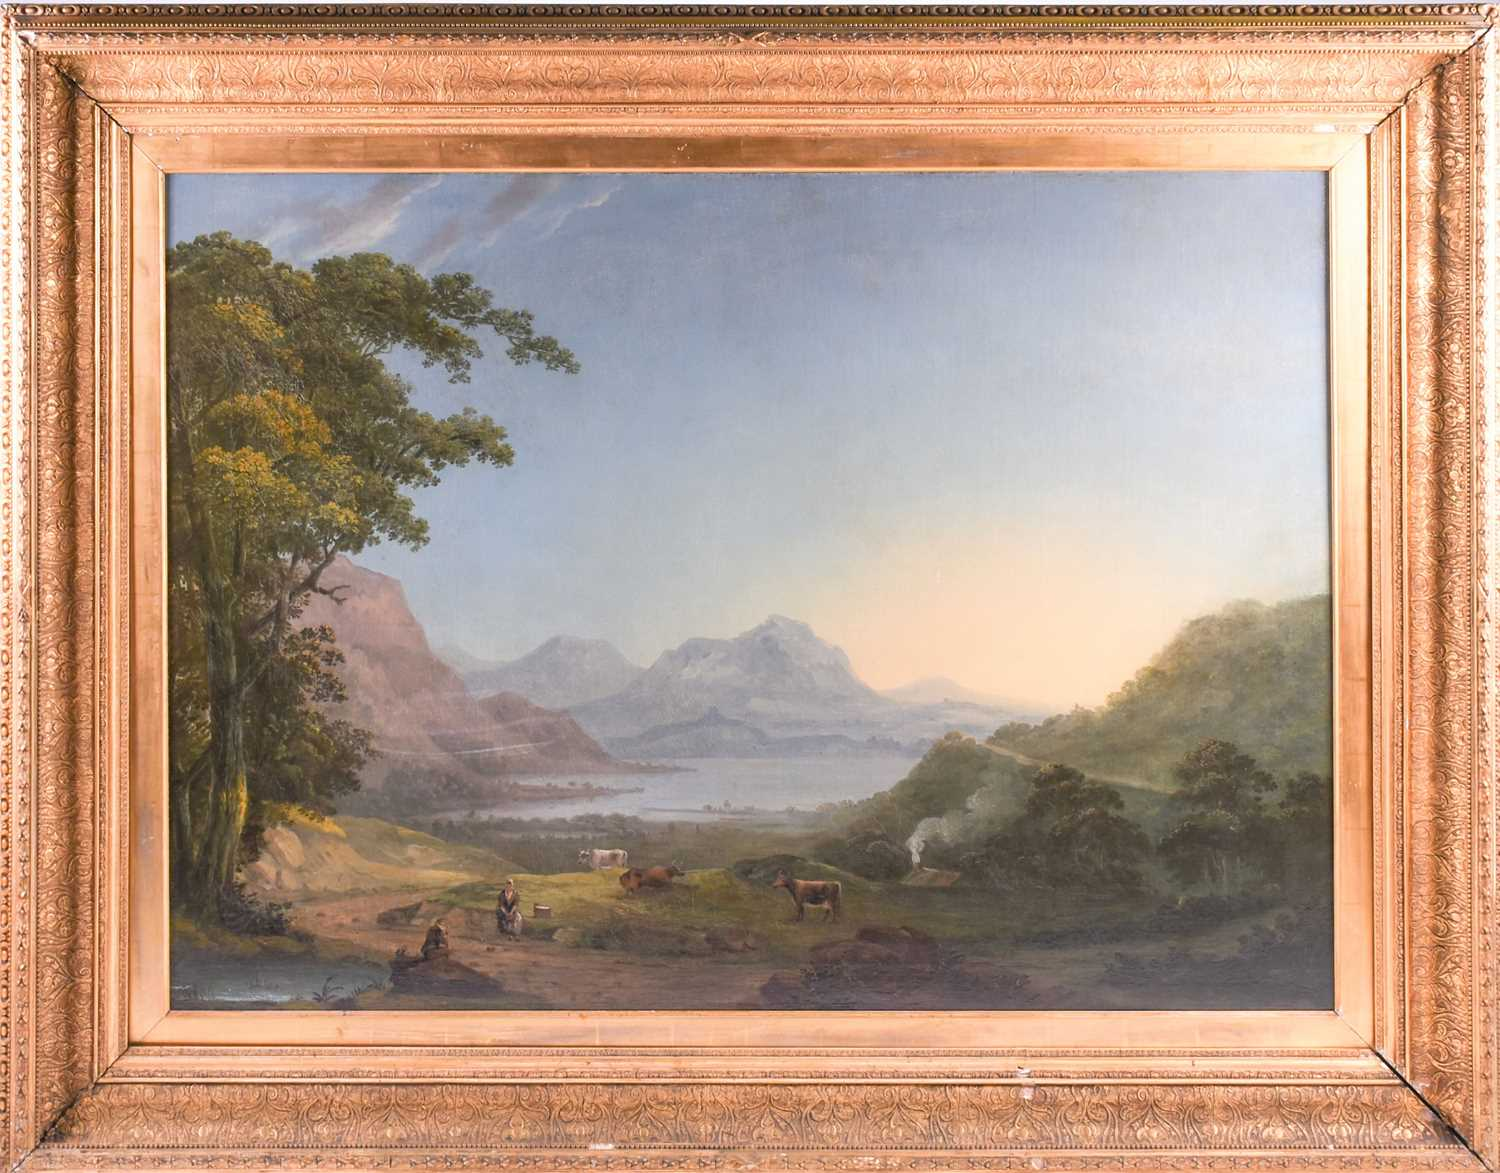 19th century oil on canvas Lake District Windermere landscape